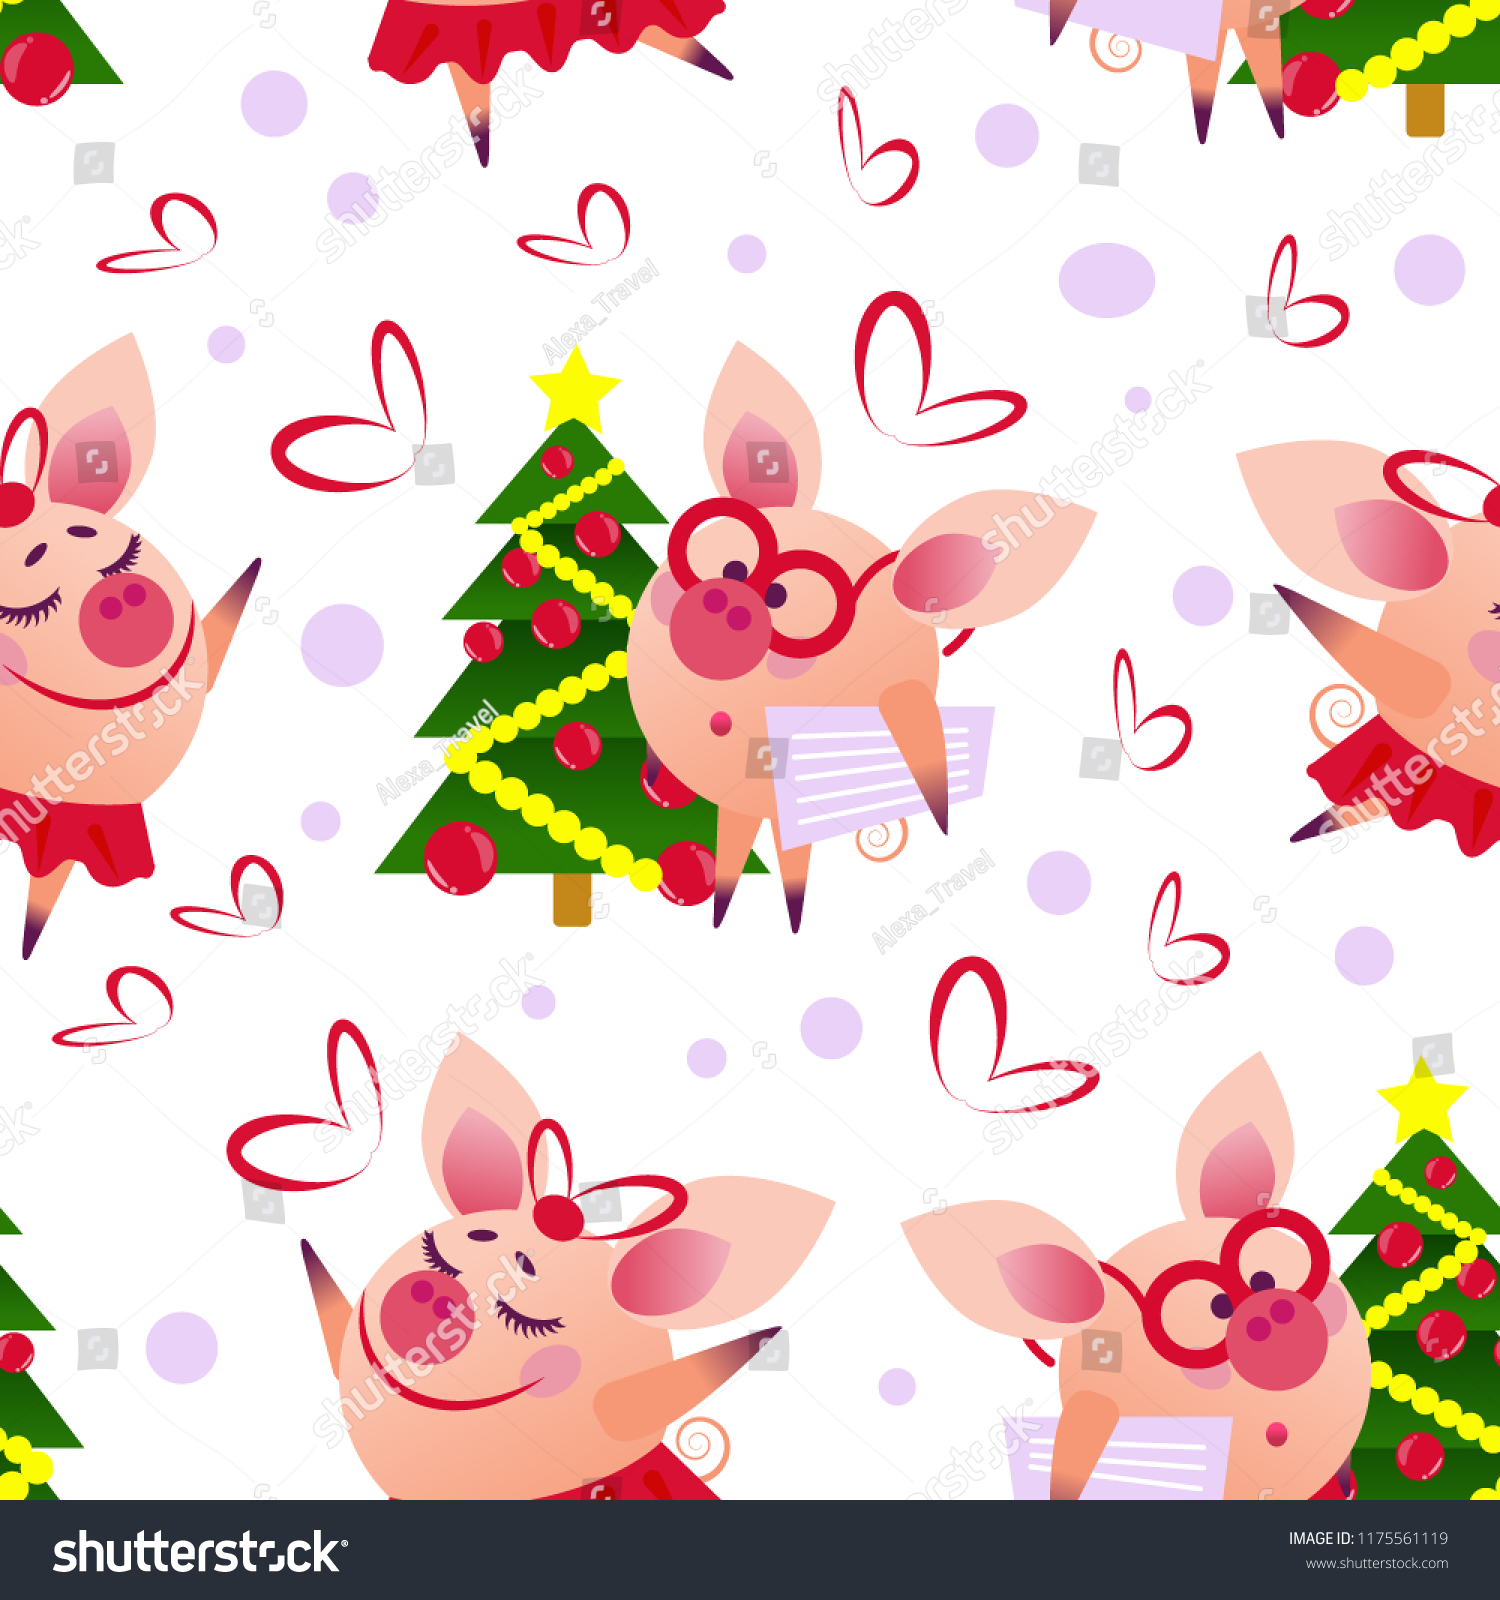 Seamless vector new year pig pattern funny pig with glasses and newspaper staying beside small